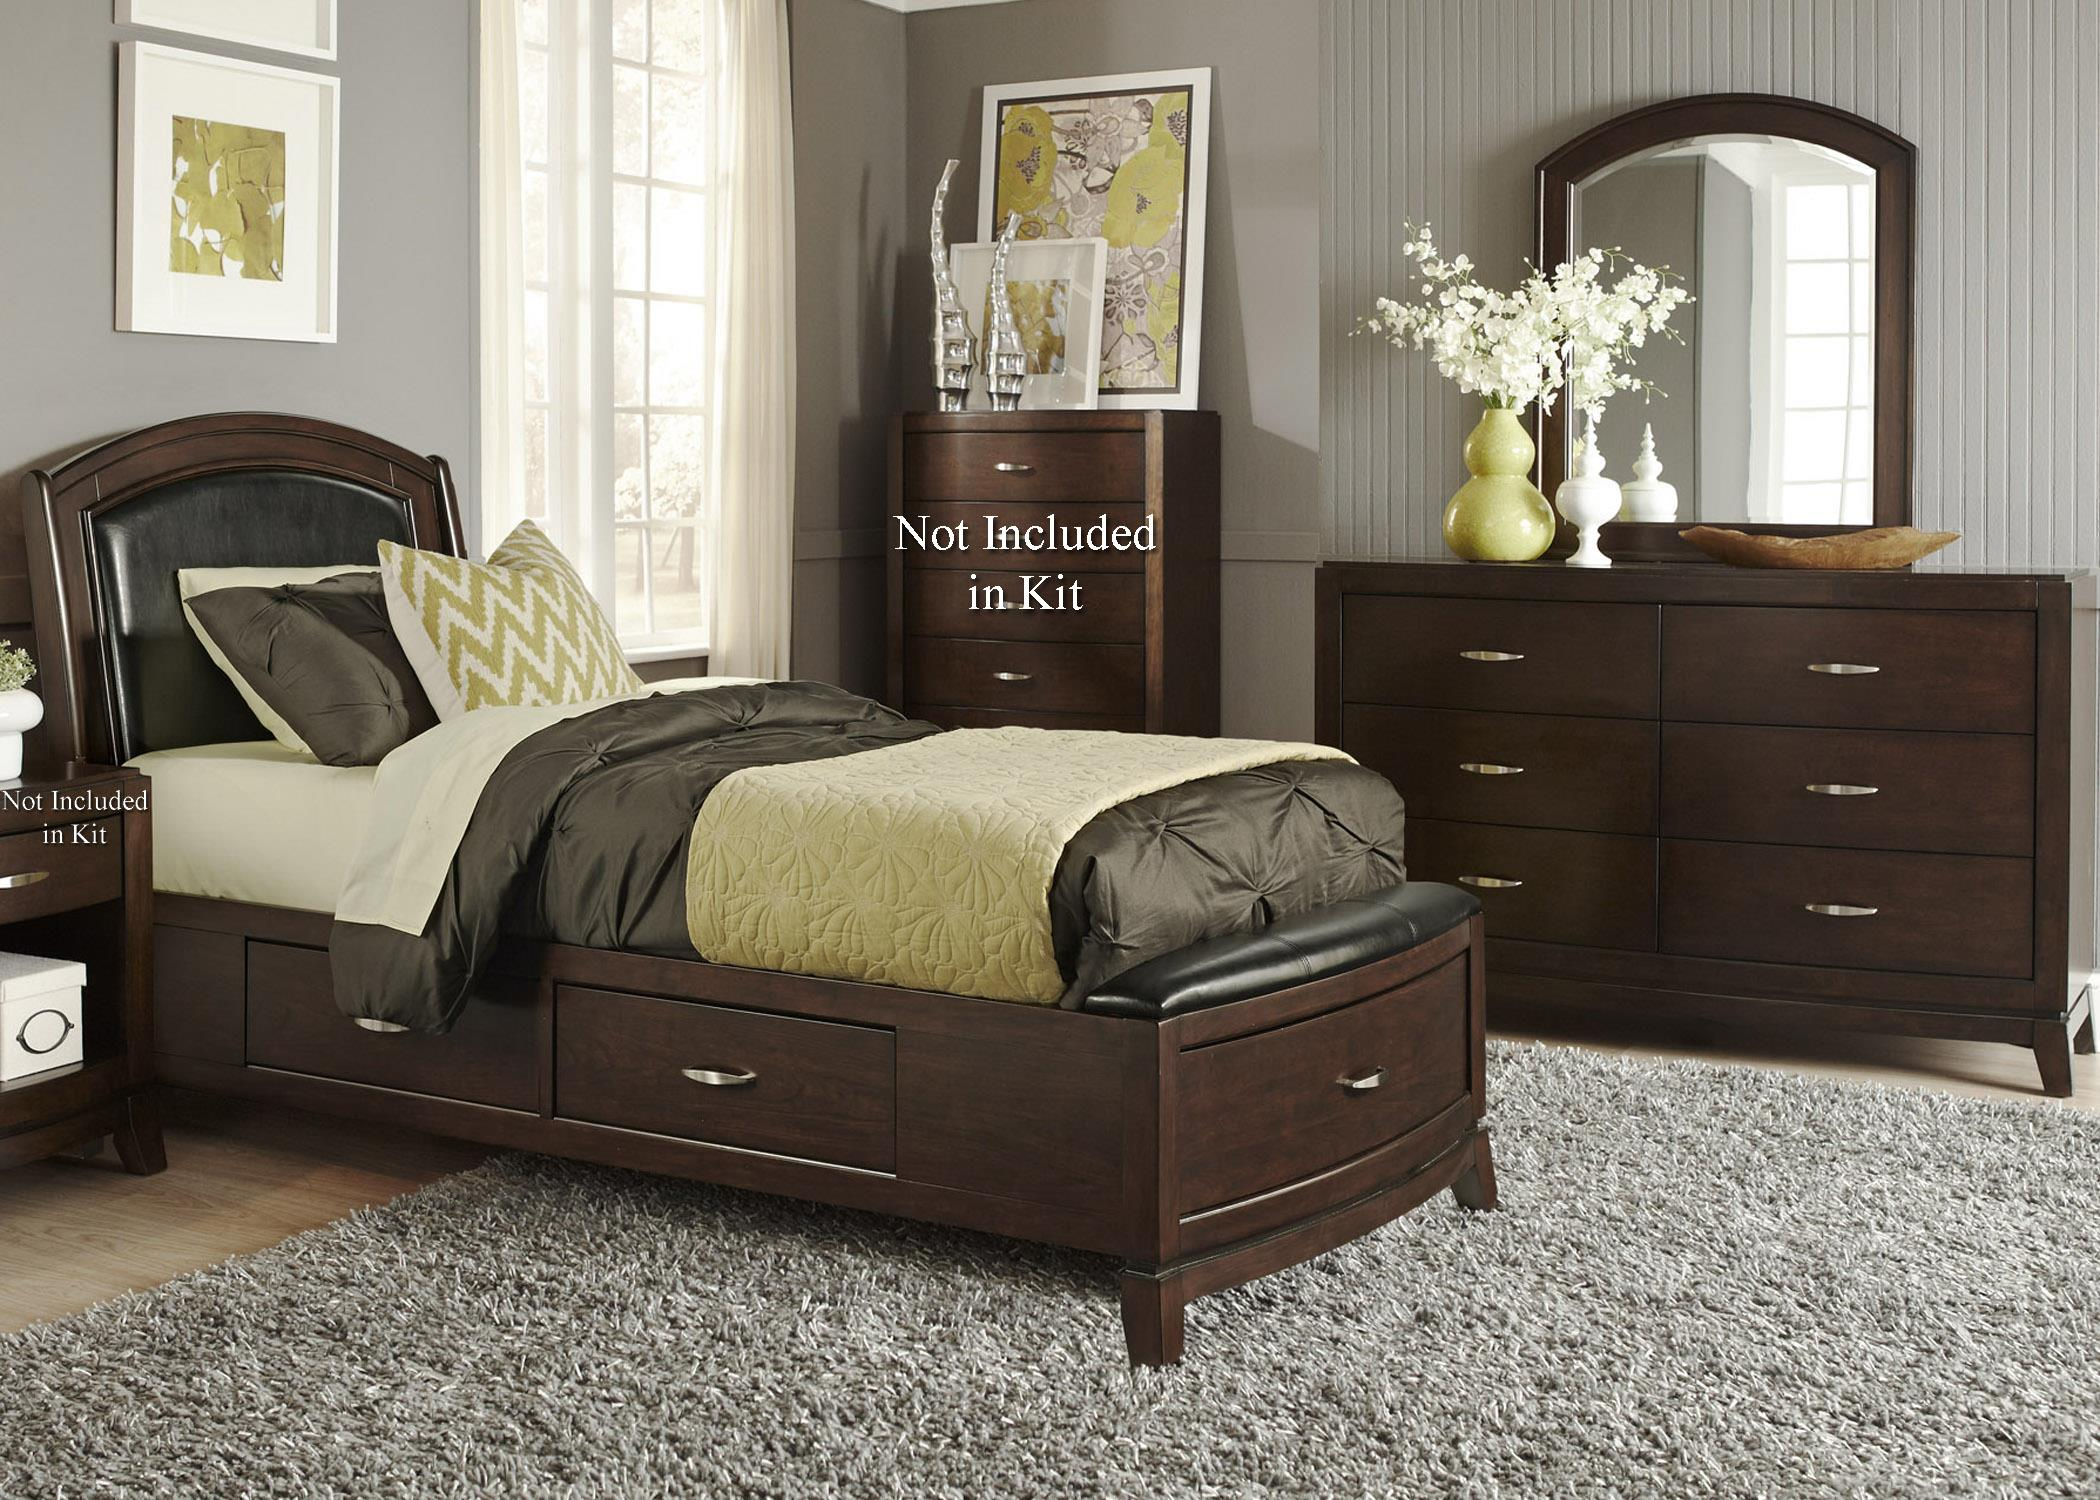 Liberty Furniture Avalon Twin Storage Bedroom Group 1 - Item Number: 505-YBR-T1SDM